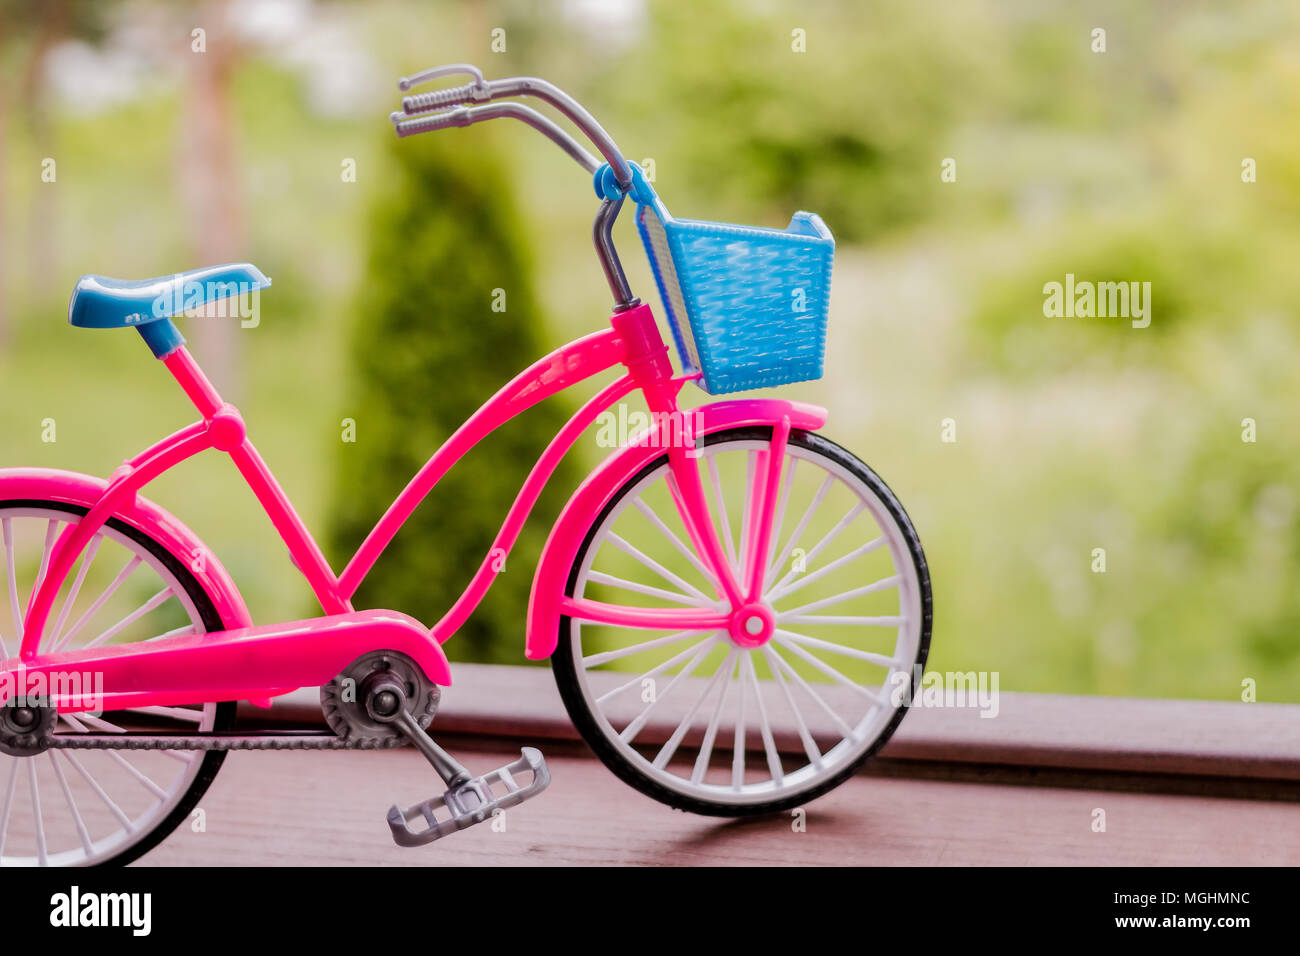 Small pink bicycle model on the handrail with garden background.Green transport.Vintage bicycle,selective and soft focus. Copy space - Stock Image